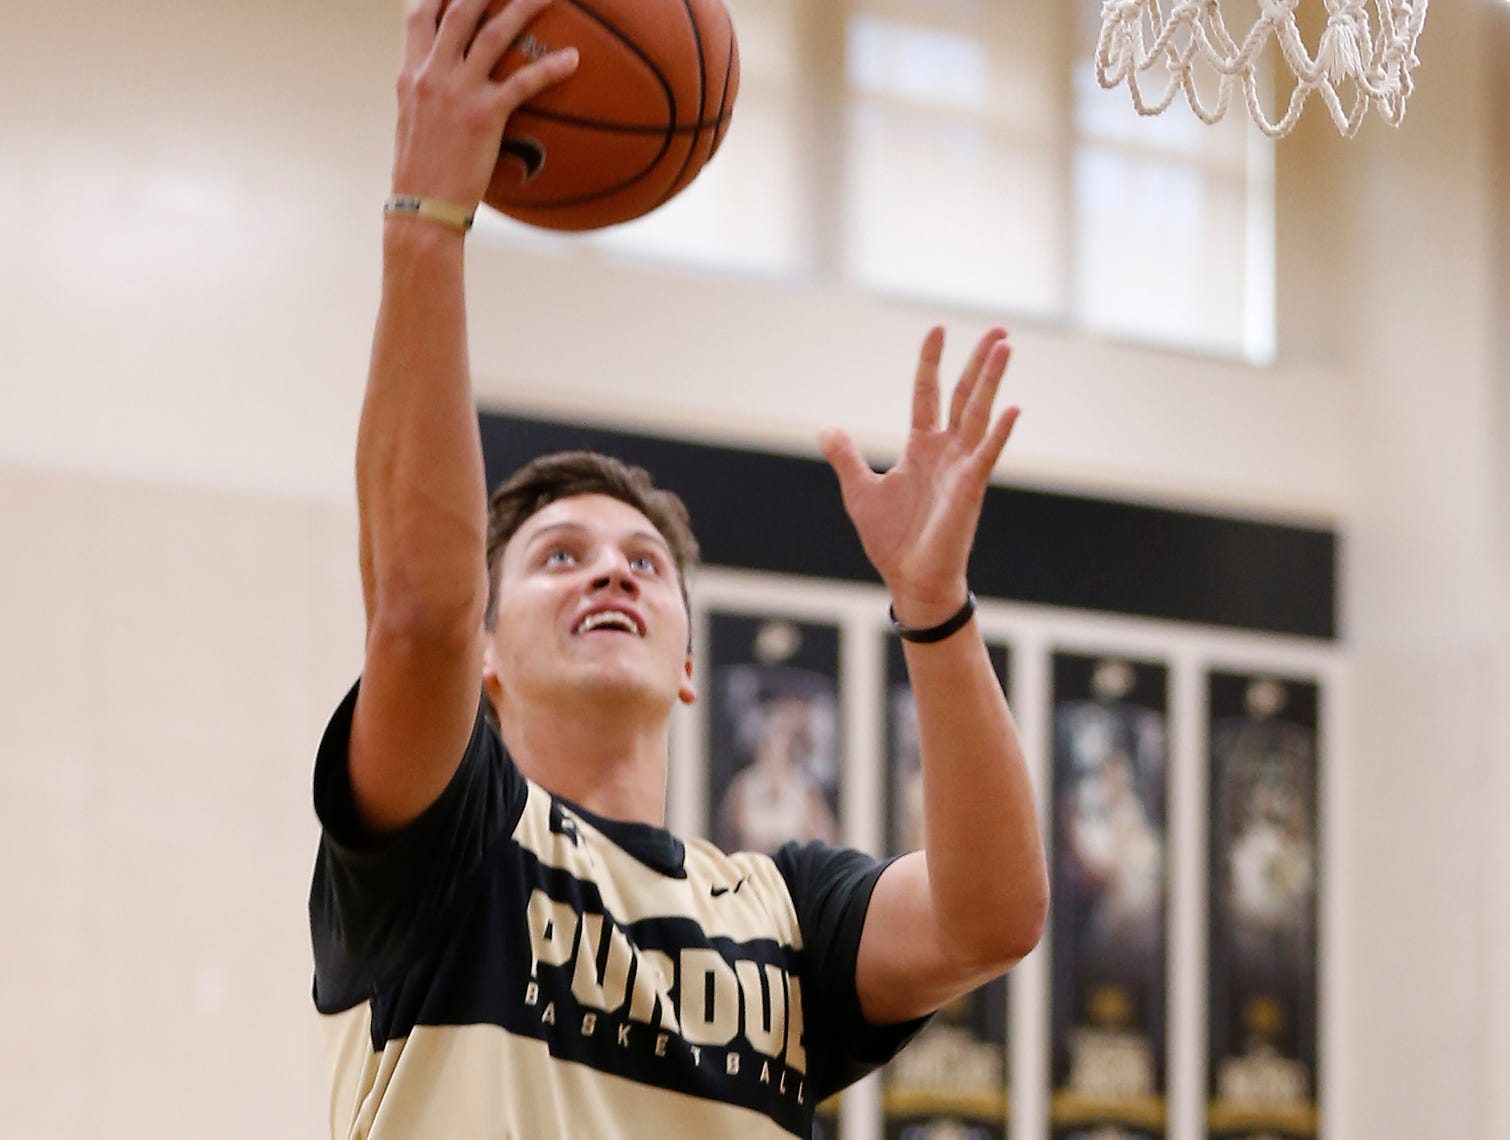 Grady Eifert with a layup during the first official practice of the season for Purdue men's basketball Tuesday, September 25, 2018, at Cardinal Court in Mackey Arena.